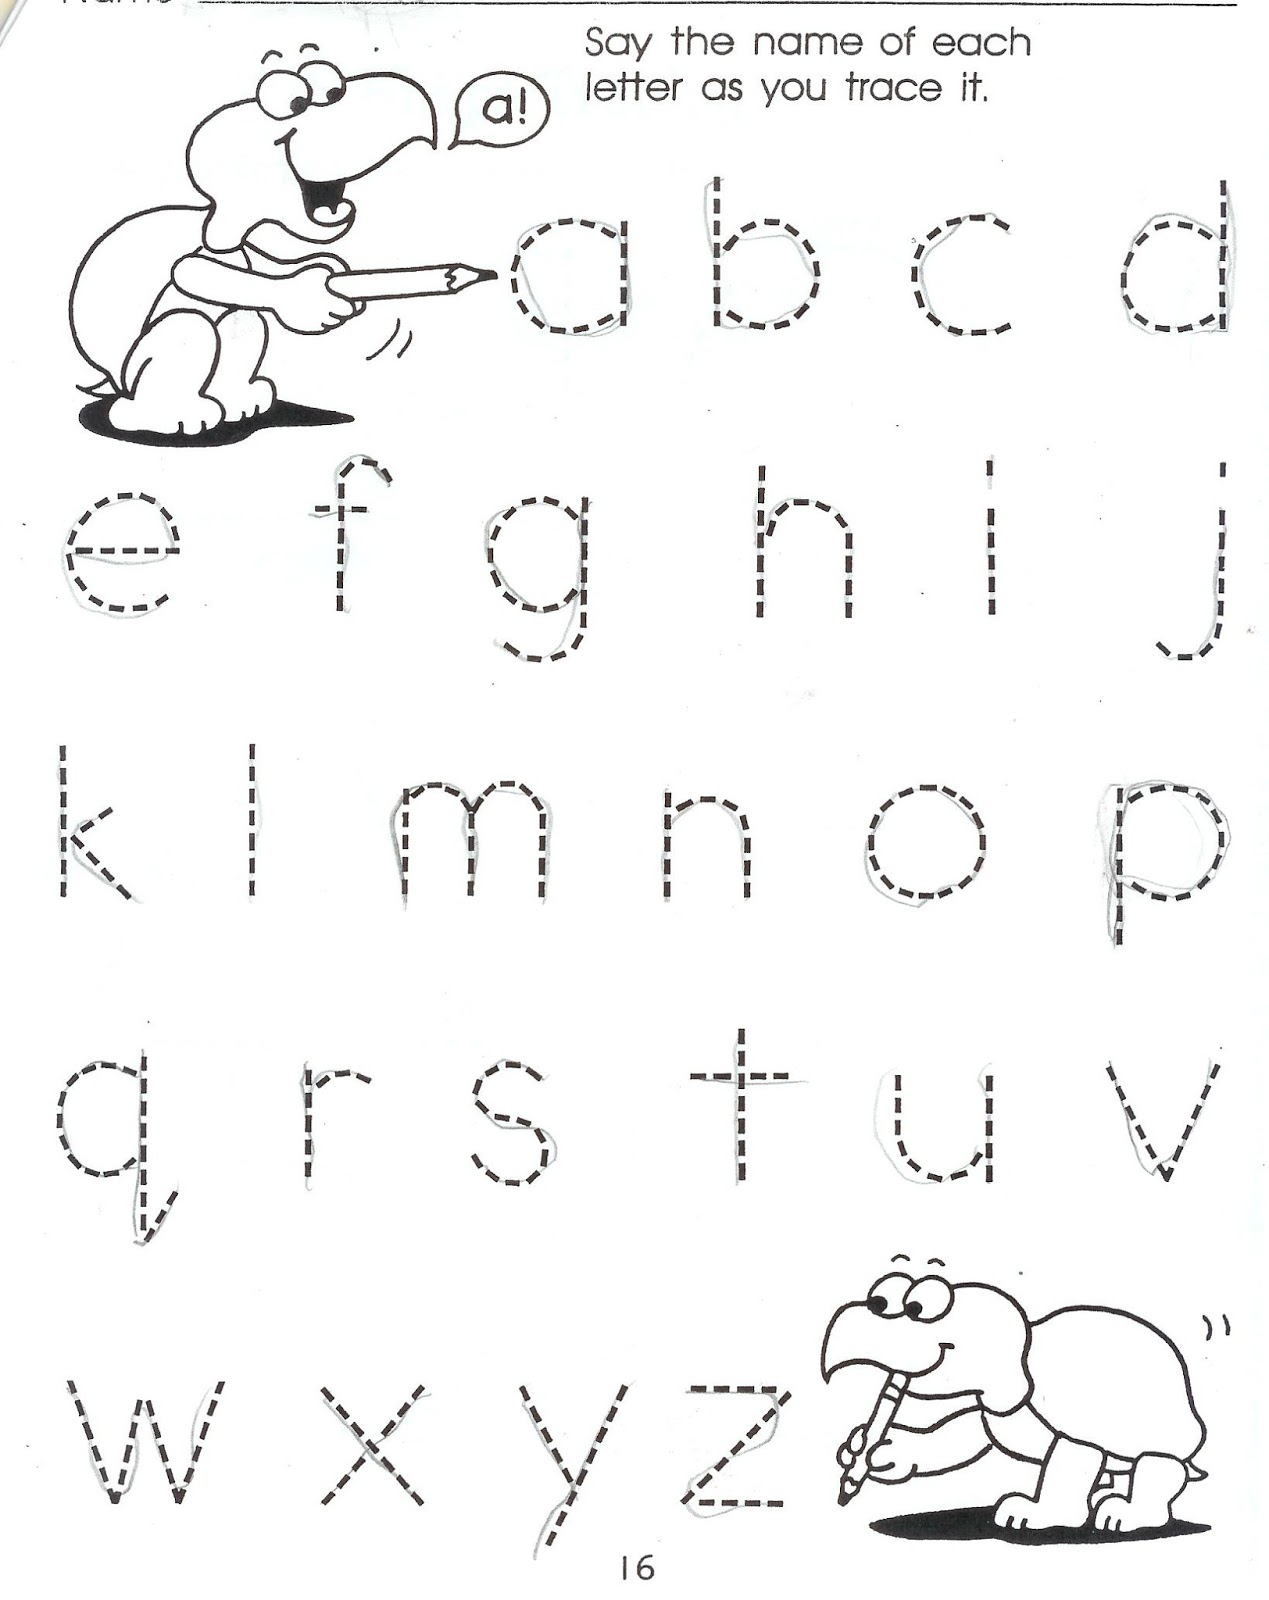 Worksheet For Preschool To Do : Momma ph d applying child development principles at